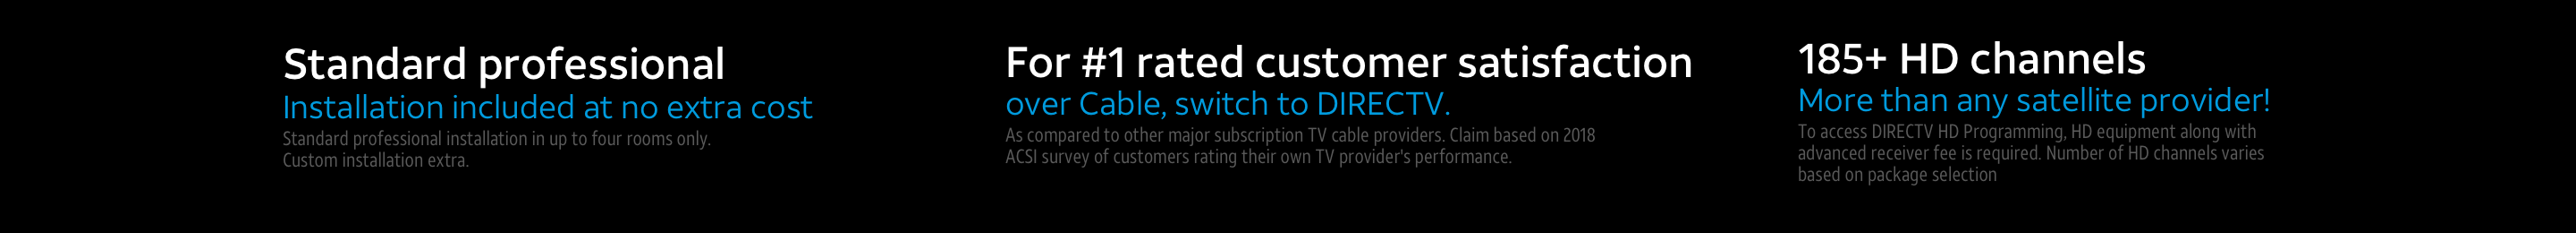 Free Installation & #1 Customer Service & 195+ HD Channels